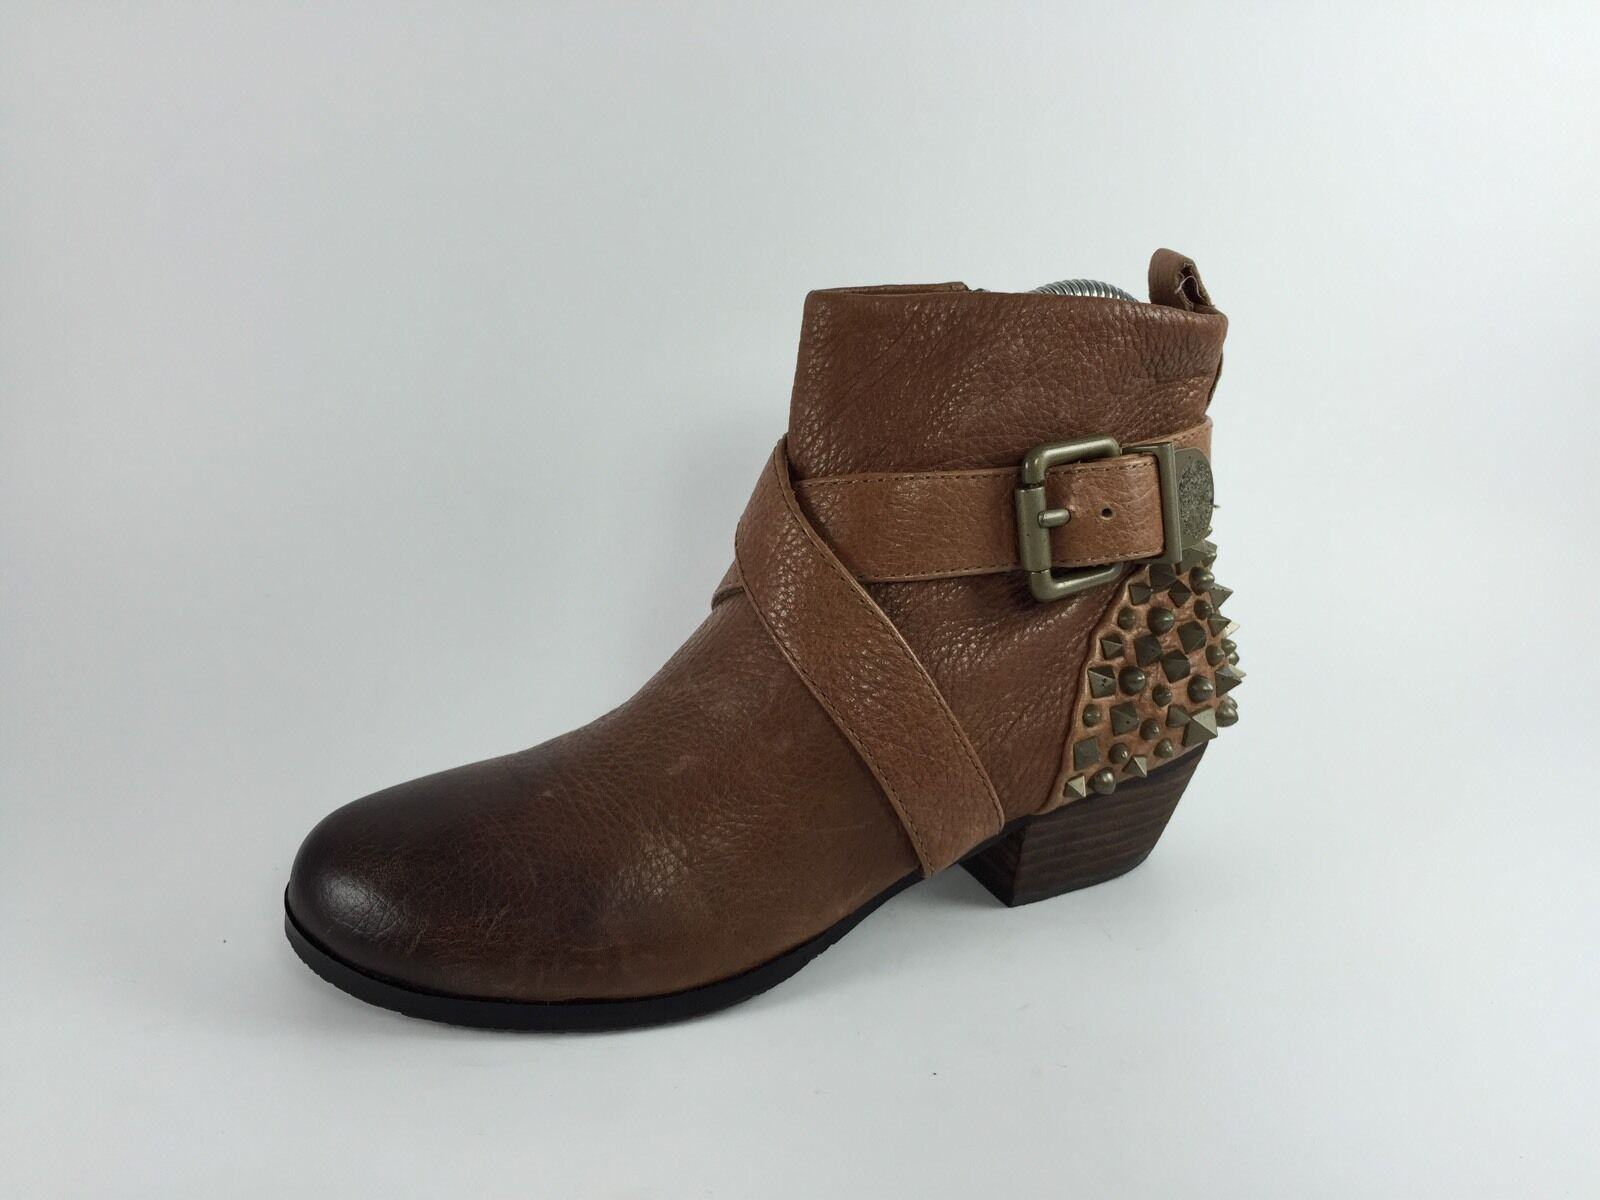 Vince Camuto Damenschuhe Braun Leder Ankle Stiefel 6 B